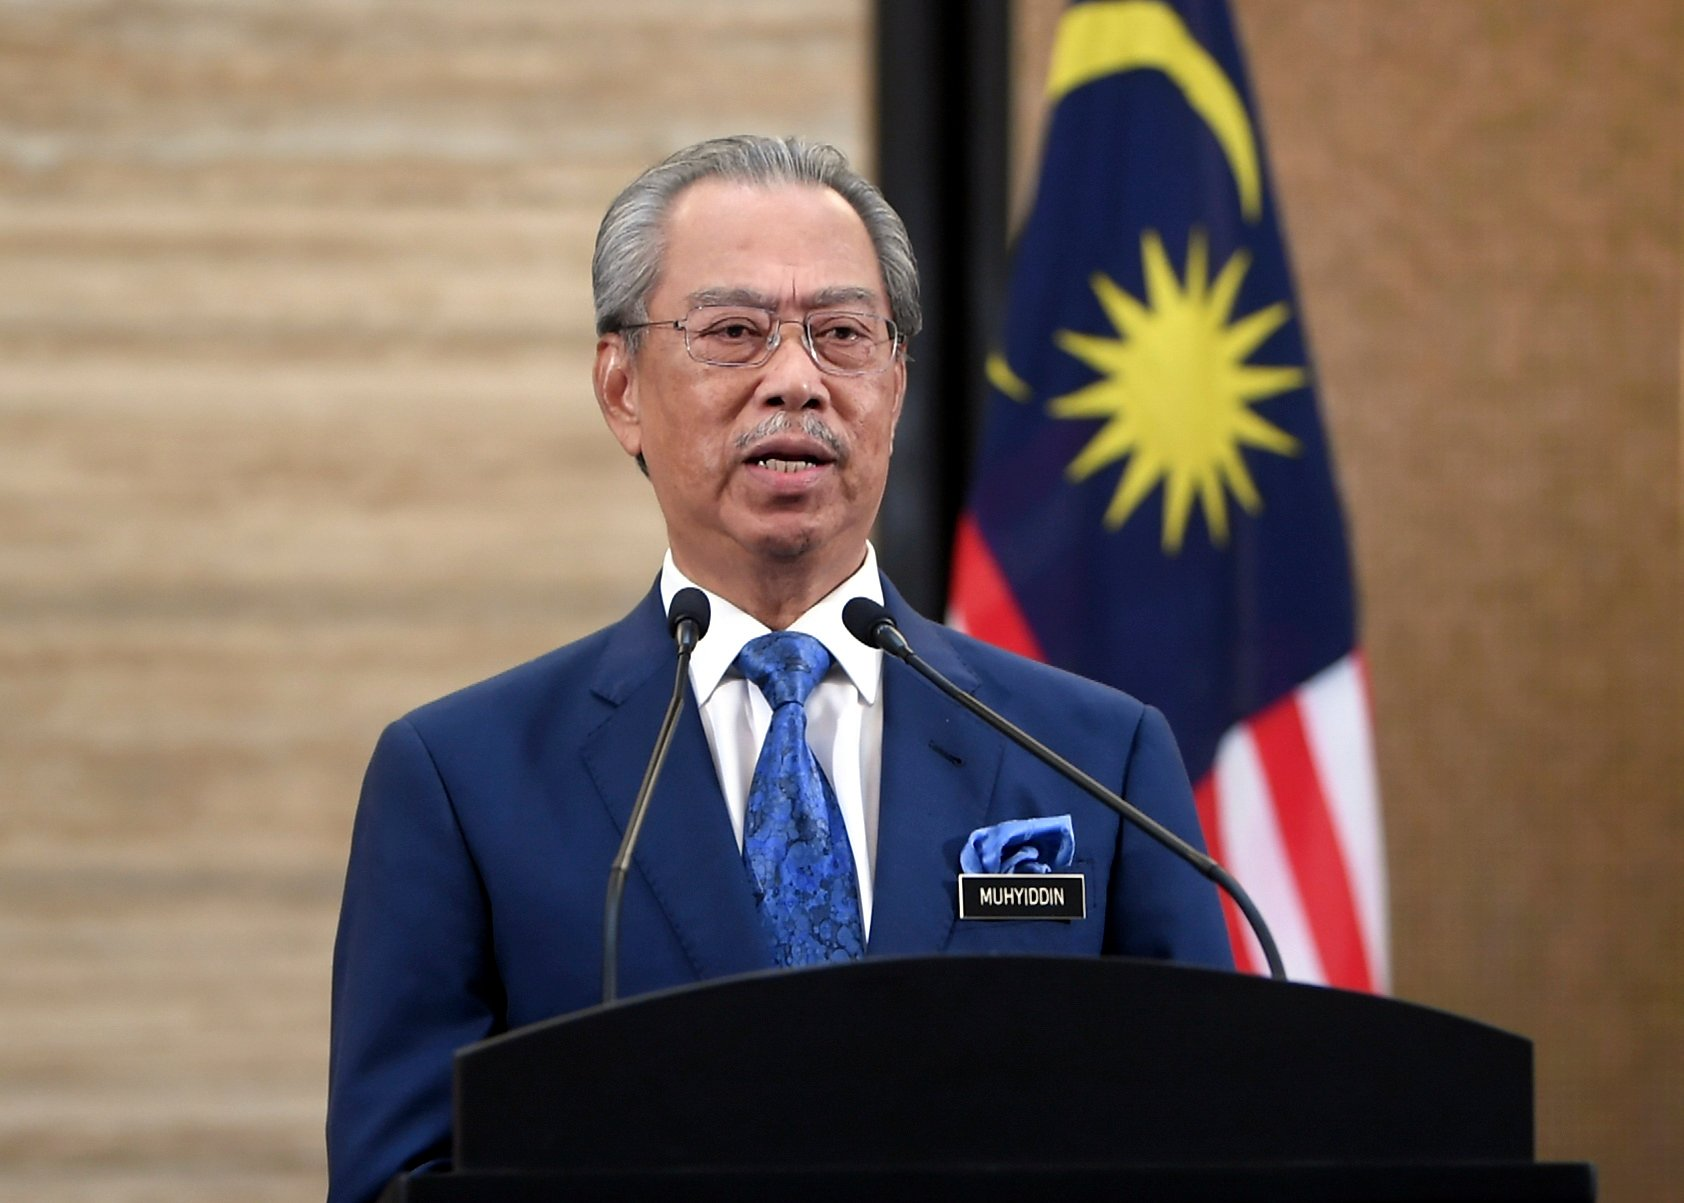 Muhyiddin's leadership during Covid-19 crisis will win him support ...